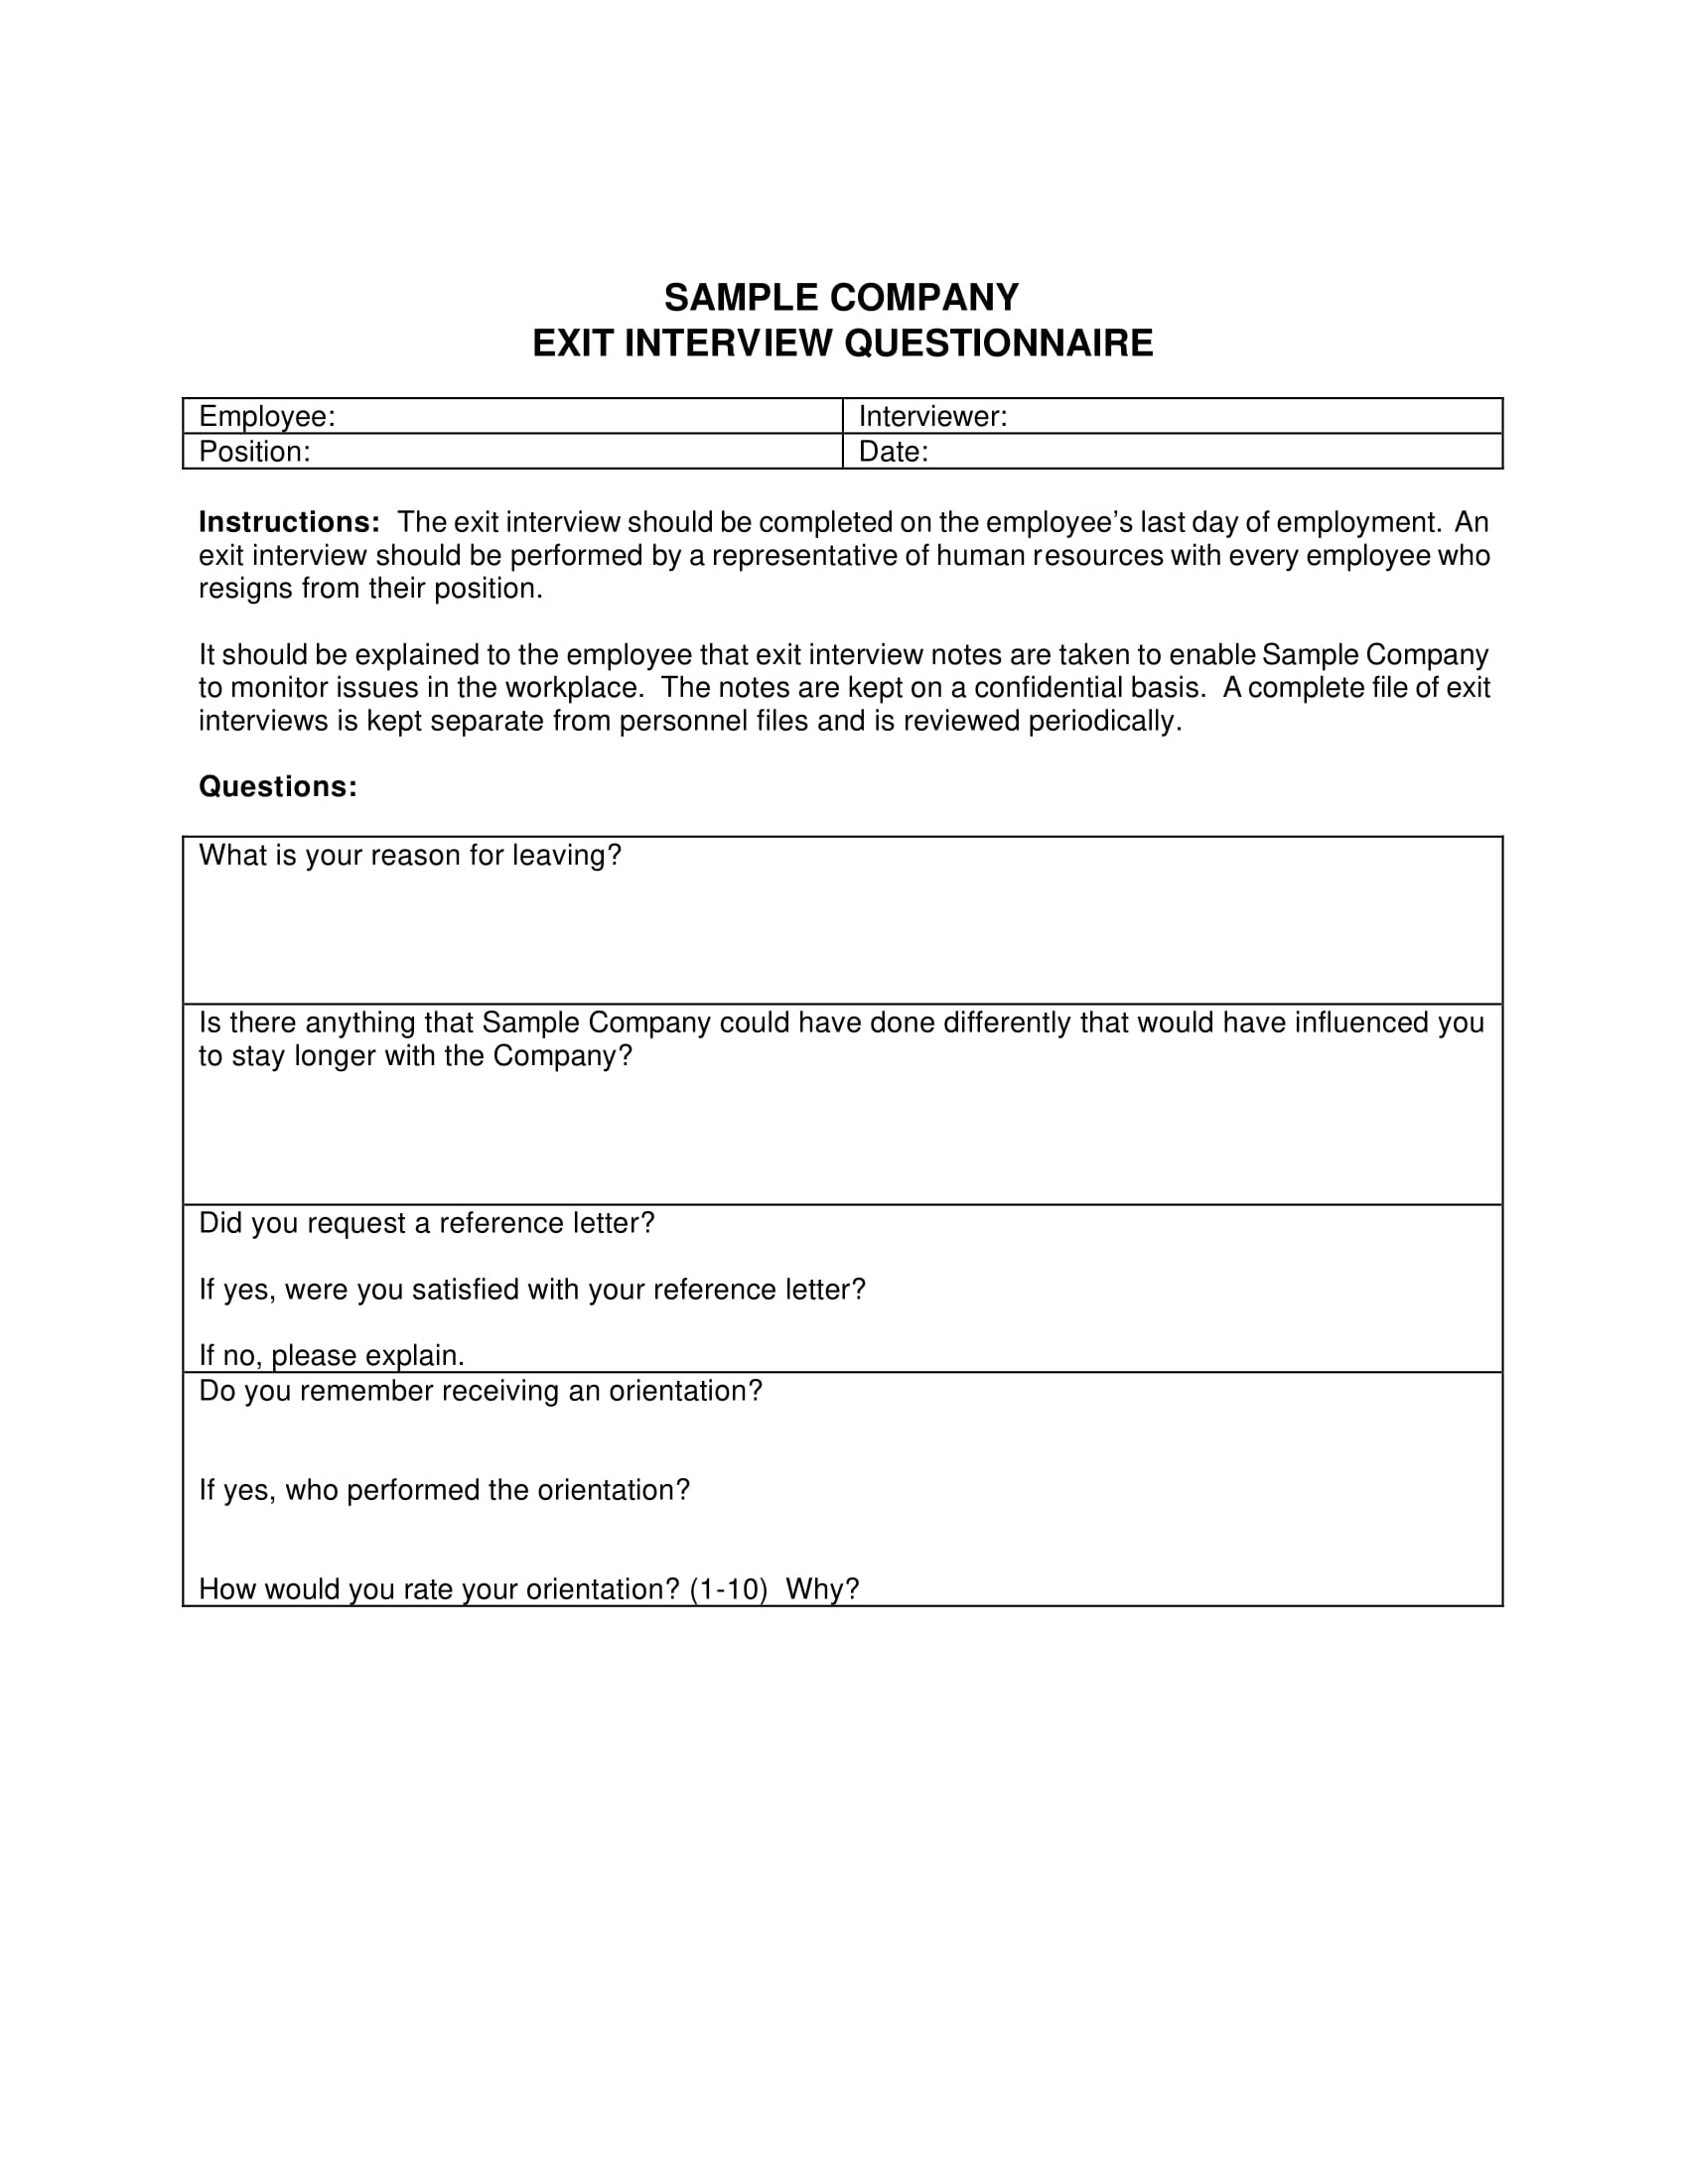 company exit interview questionnaire 1